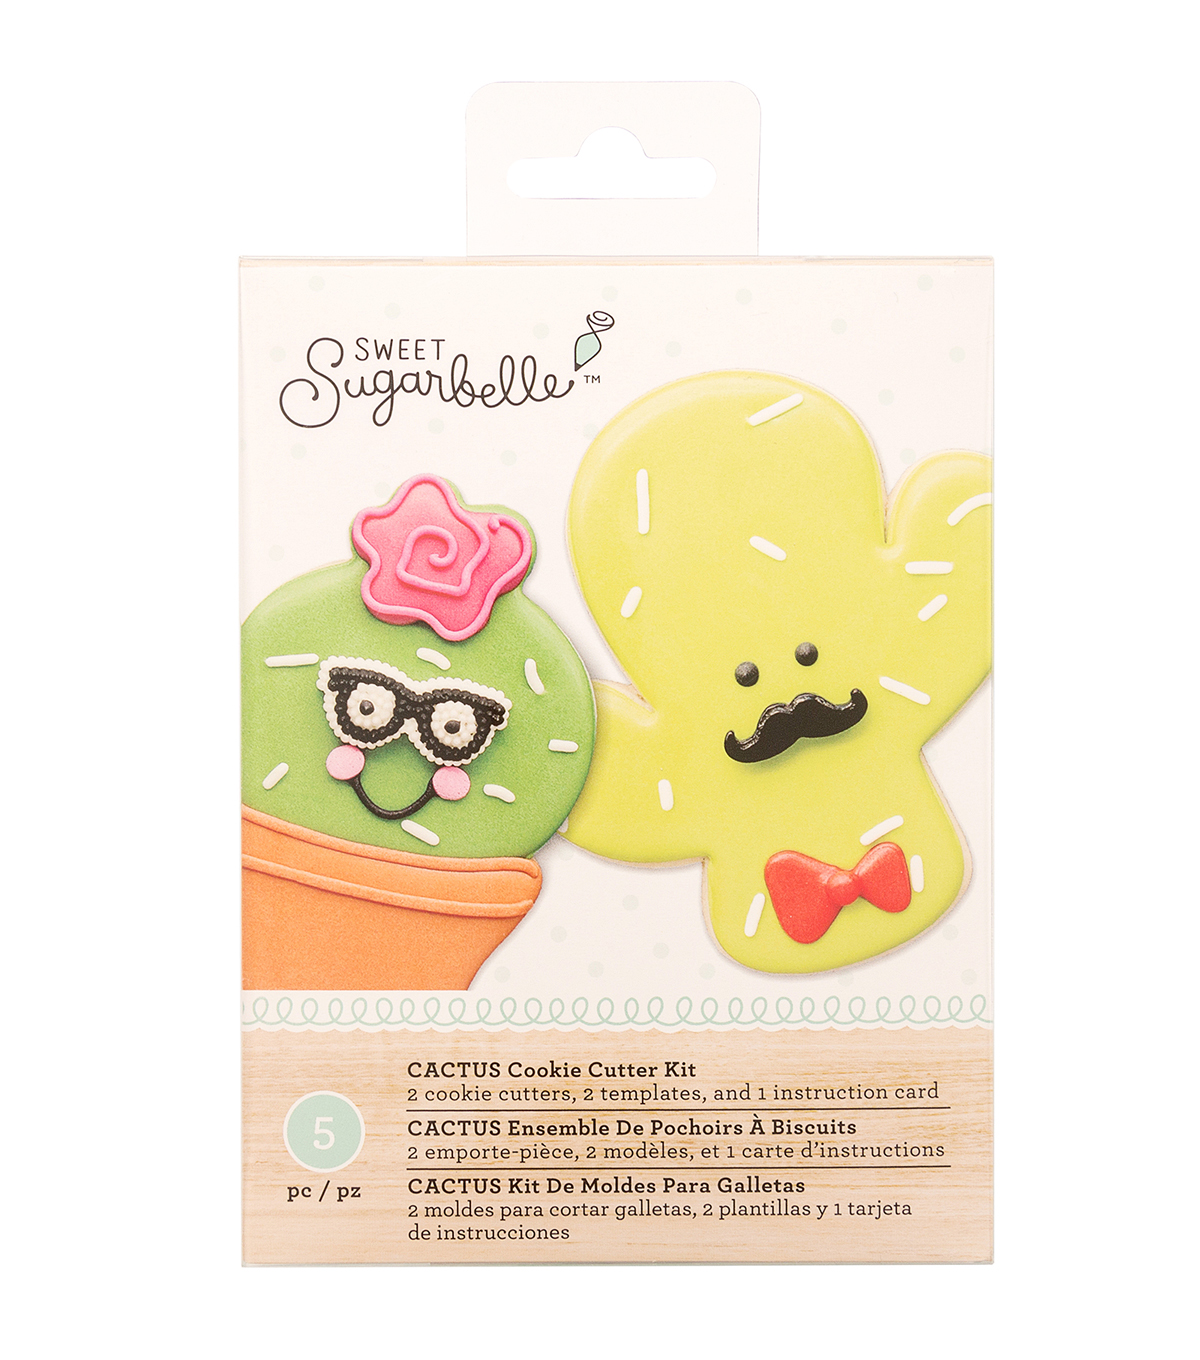 Sweet Sugarbelle 5 pk Cactus Specialty Cookie Cutter Set